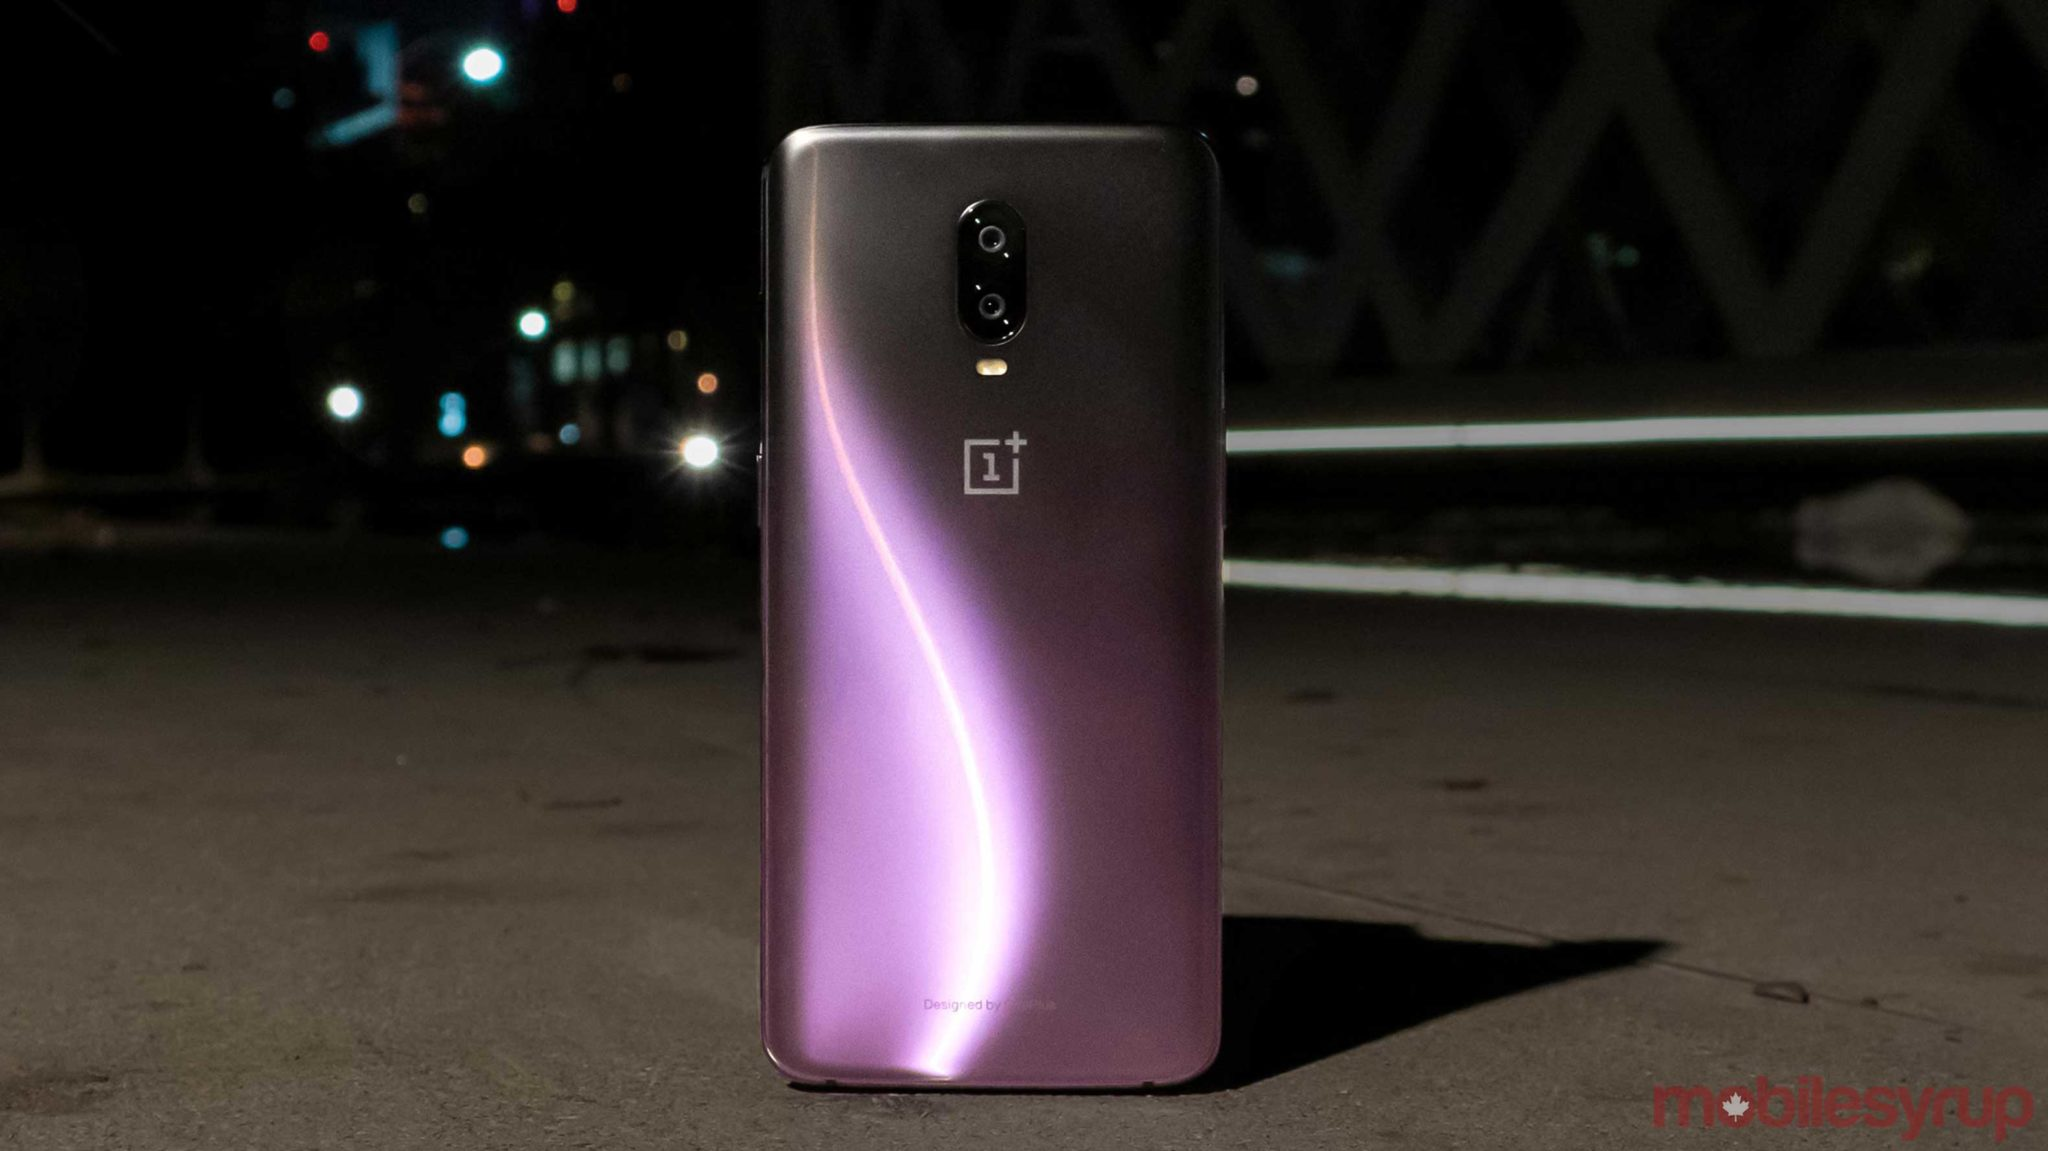 Android 11 is almost available on the OnePlus 6 series